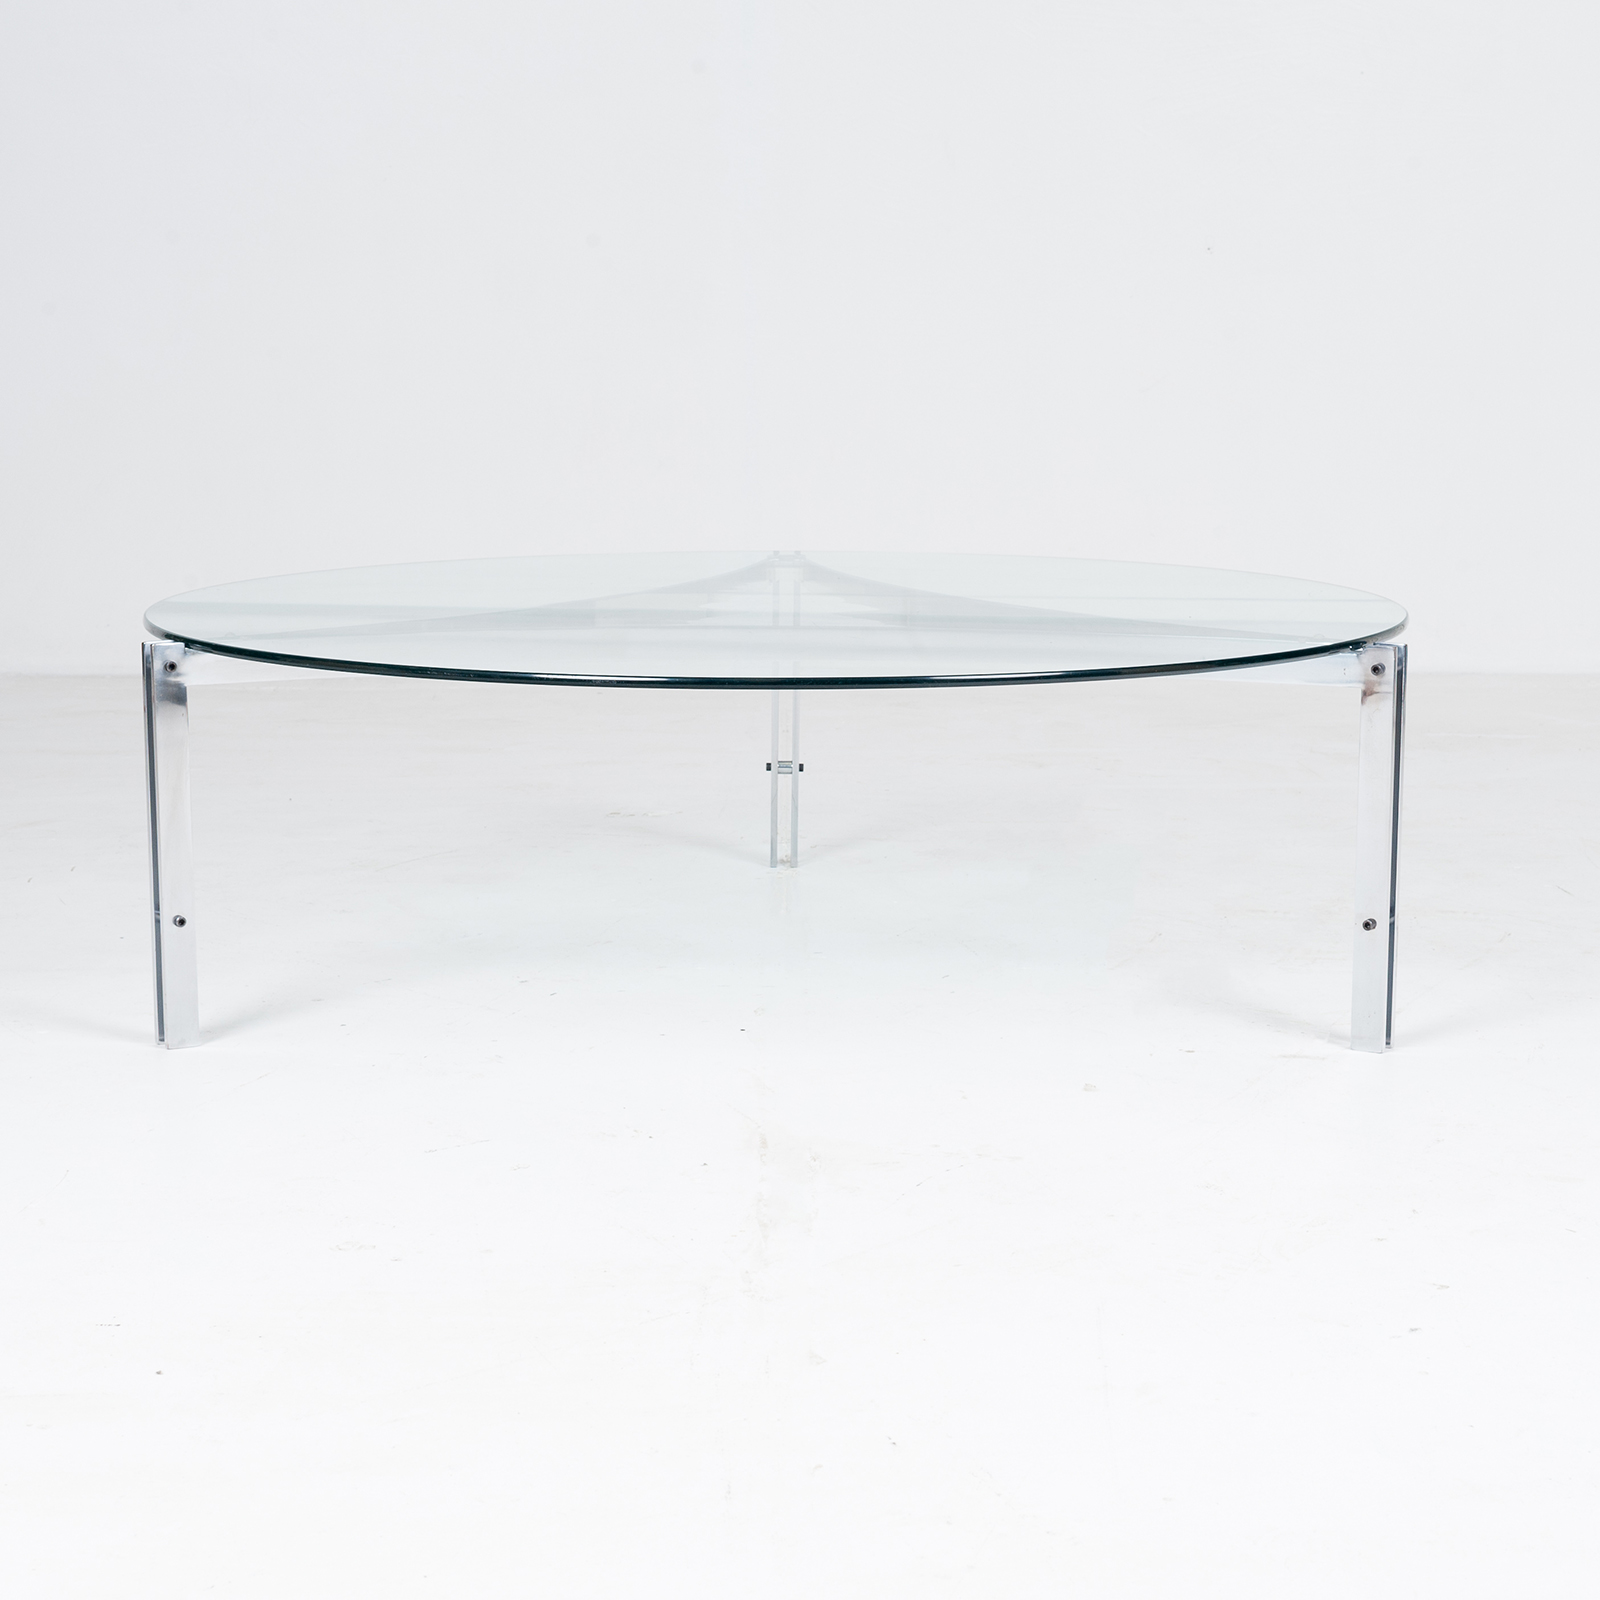 Tri Base Coffee Table By Metaform, 1970s, The Netherlands7